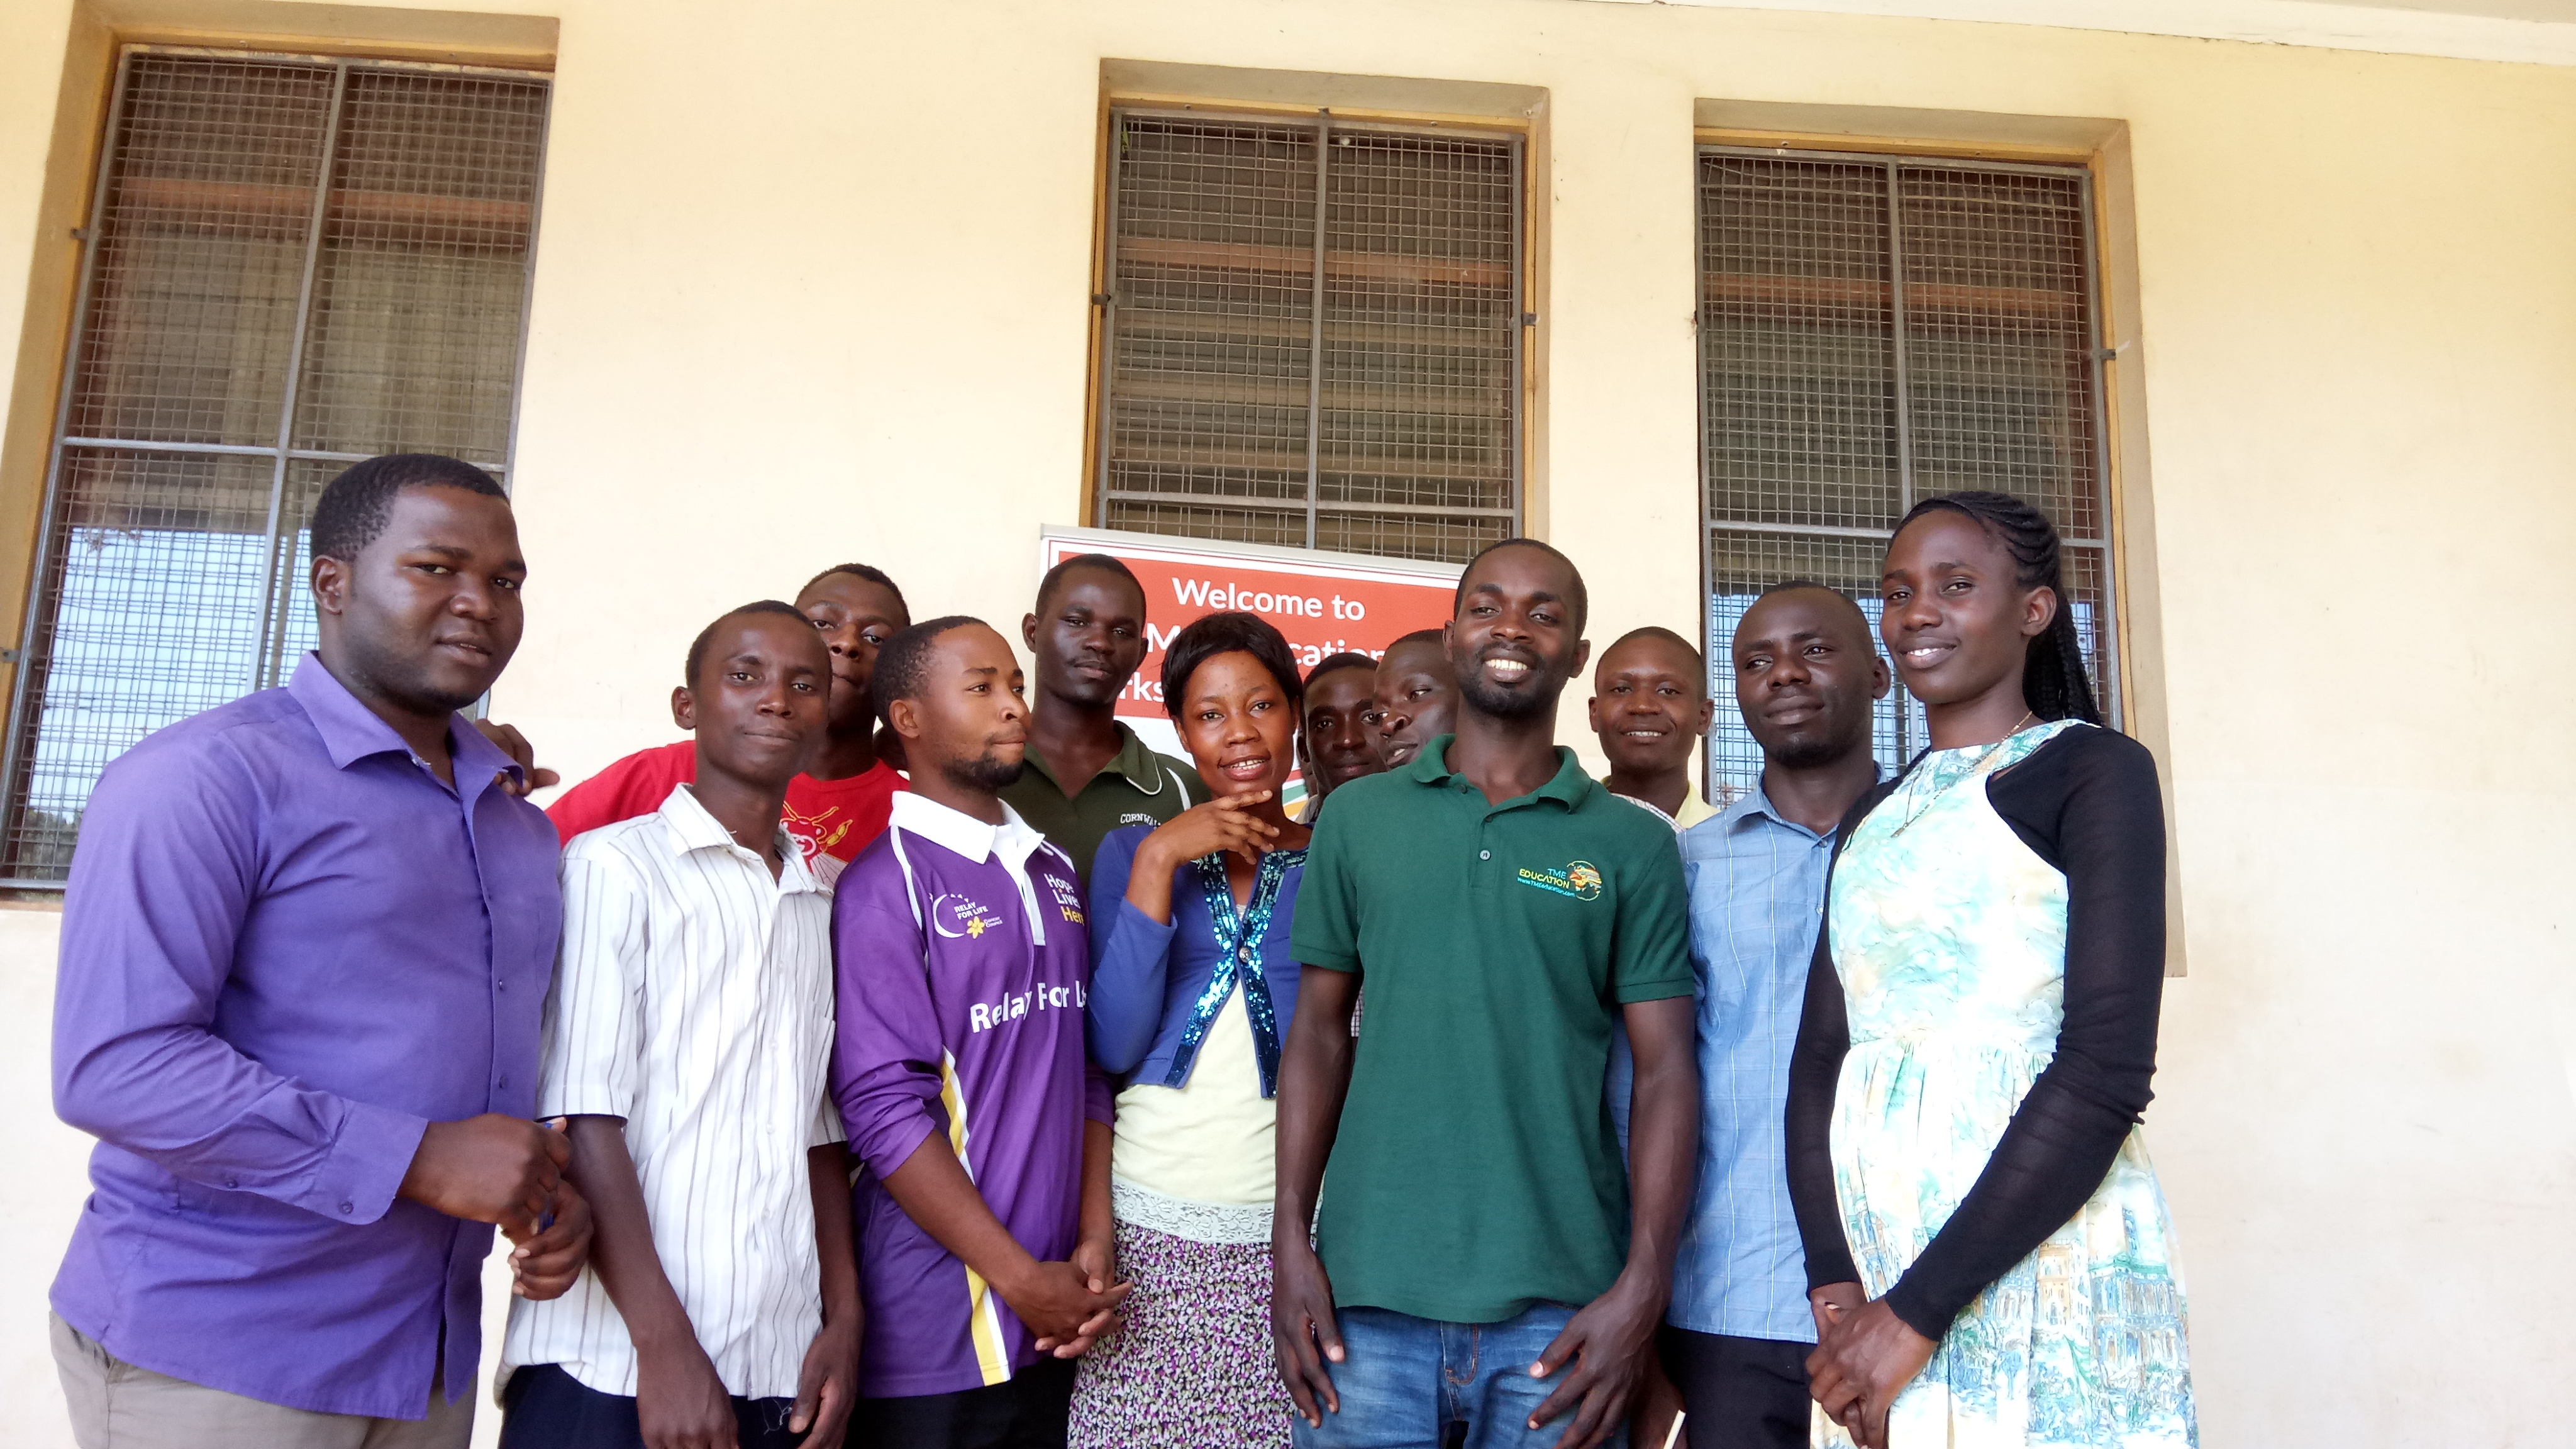 Report: Teacher Training at Jinja Vocational Training Centre, Uganda (October 2018).